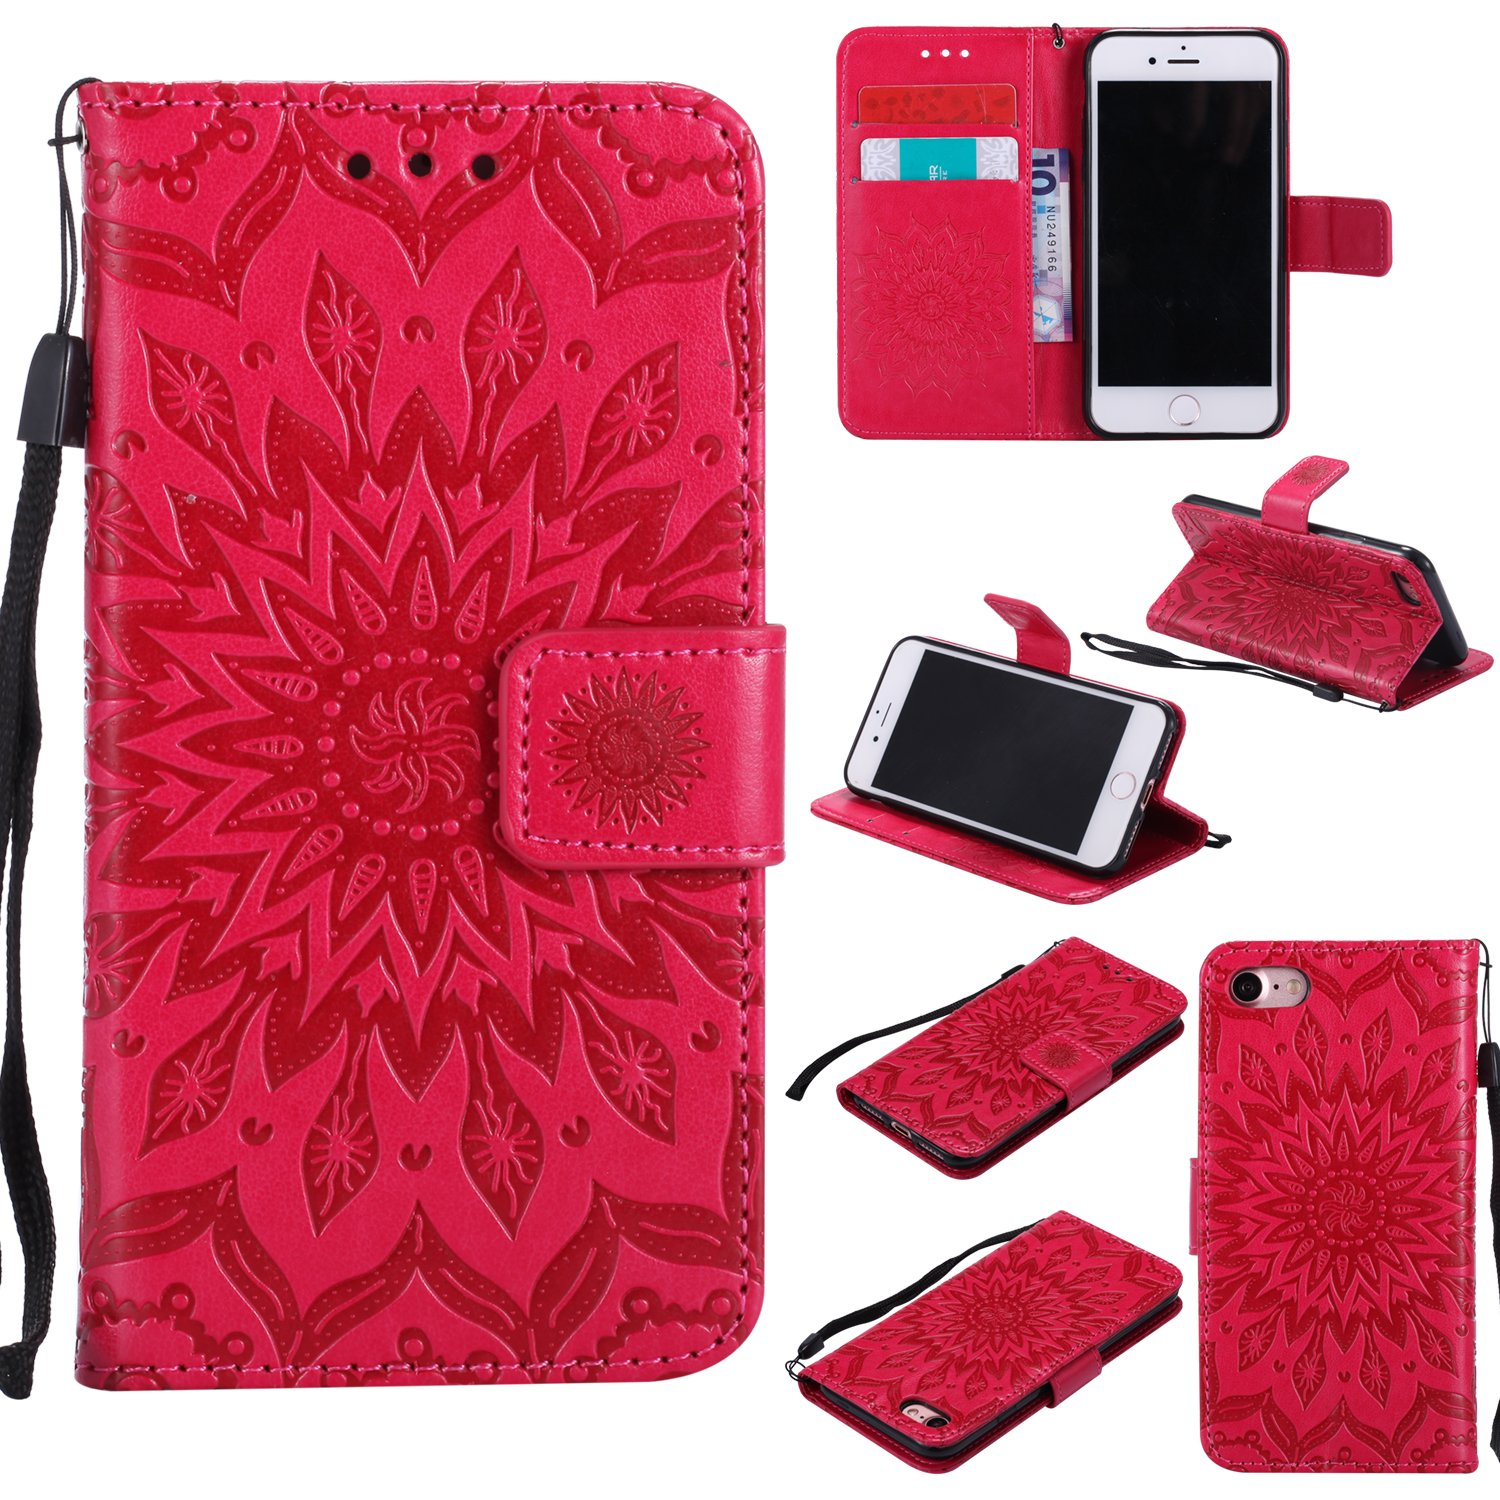 Phone Protective Case for iPhone 6, iPhone 6S Case Leather Wallet, Gostyle Sun Flower Pattern Embossed Stand Feature PU Flip Cover Magnetic Closure with Card Slots Holder and Lanyard Strap(Rose Gold)